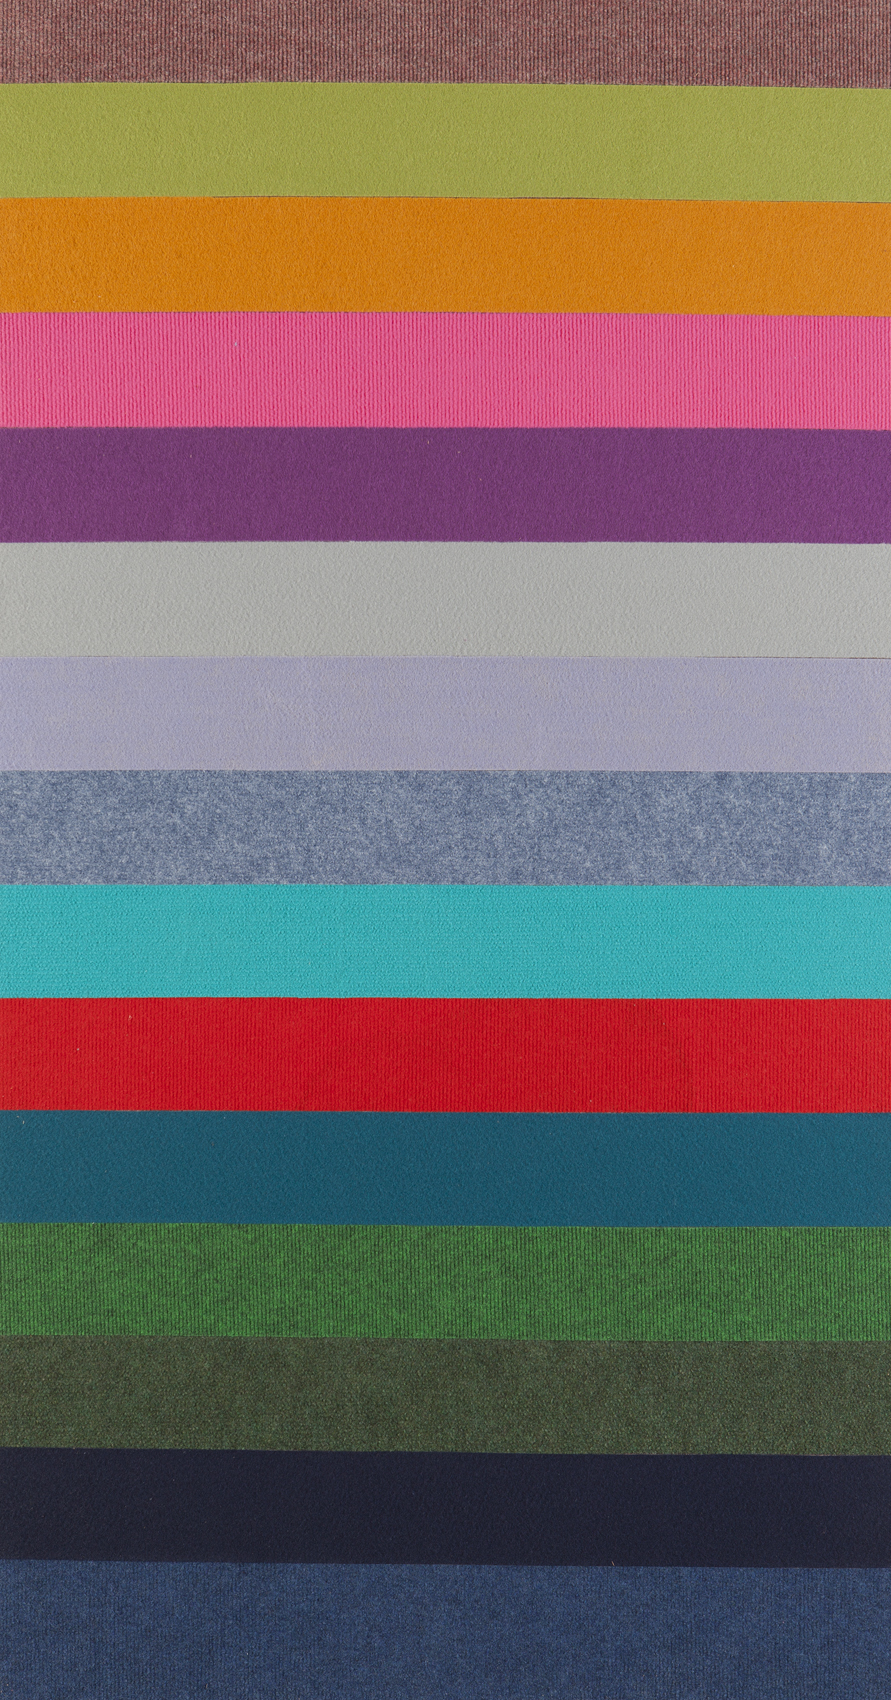 Untitled, 2016, wall to wall carpet on plywood, 150x80 cm (6).jpg